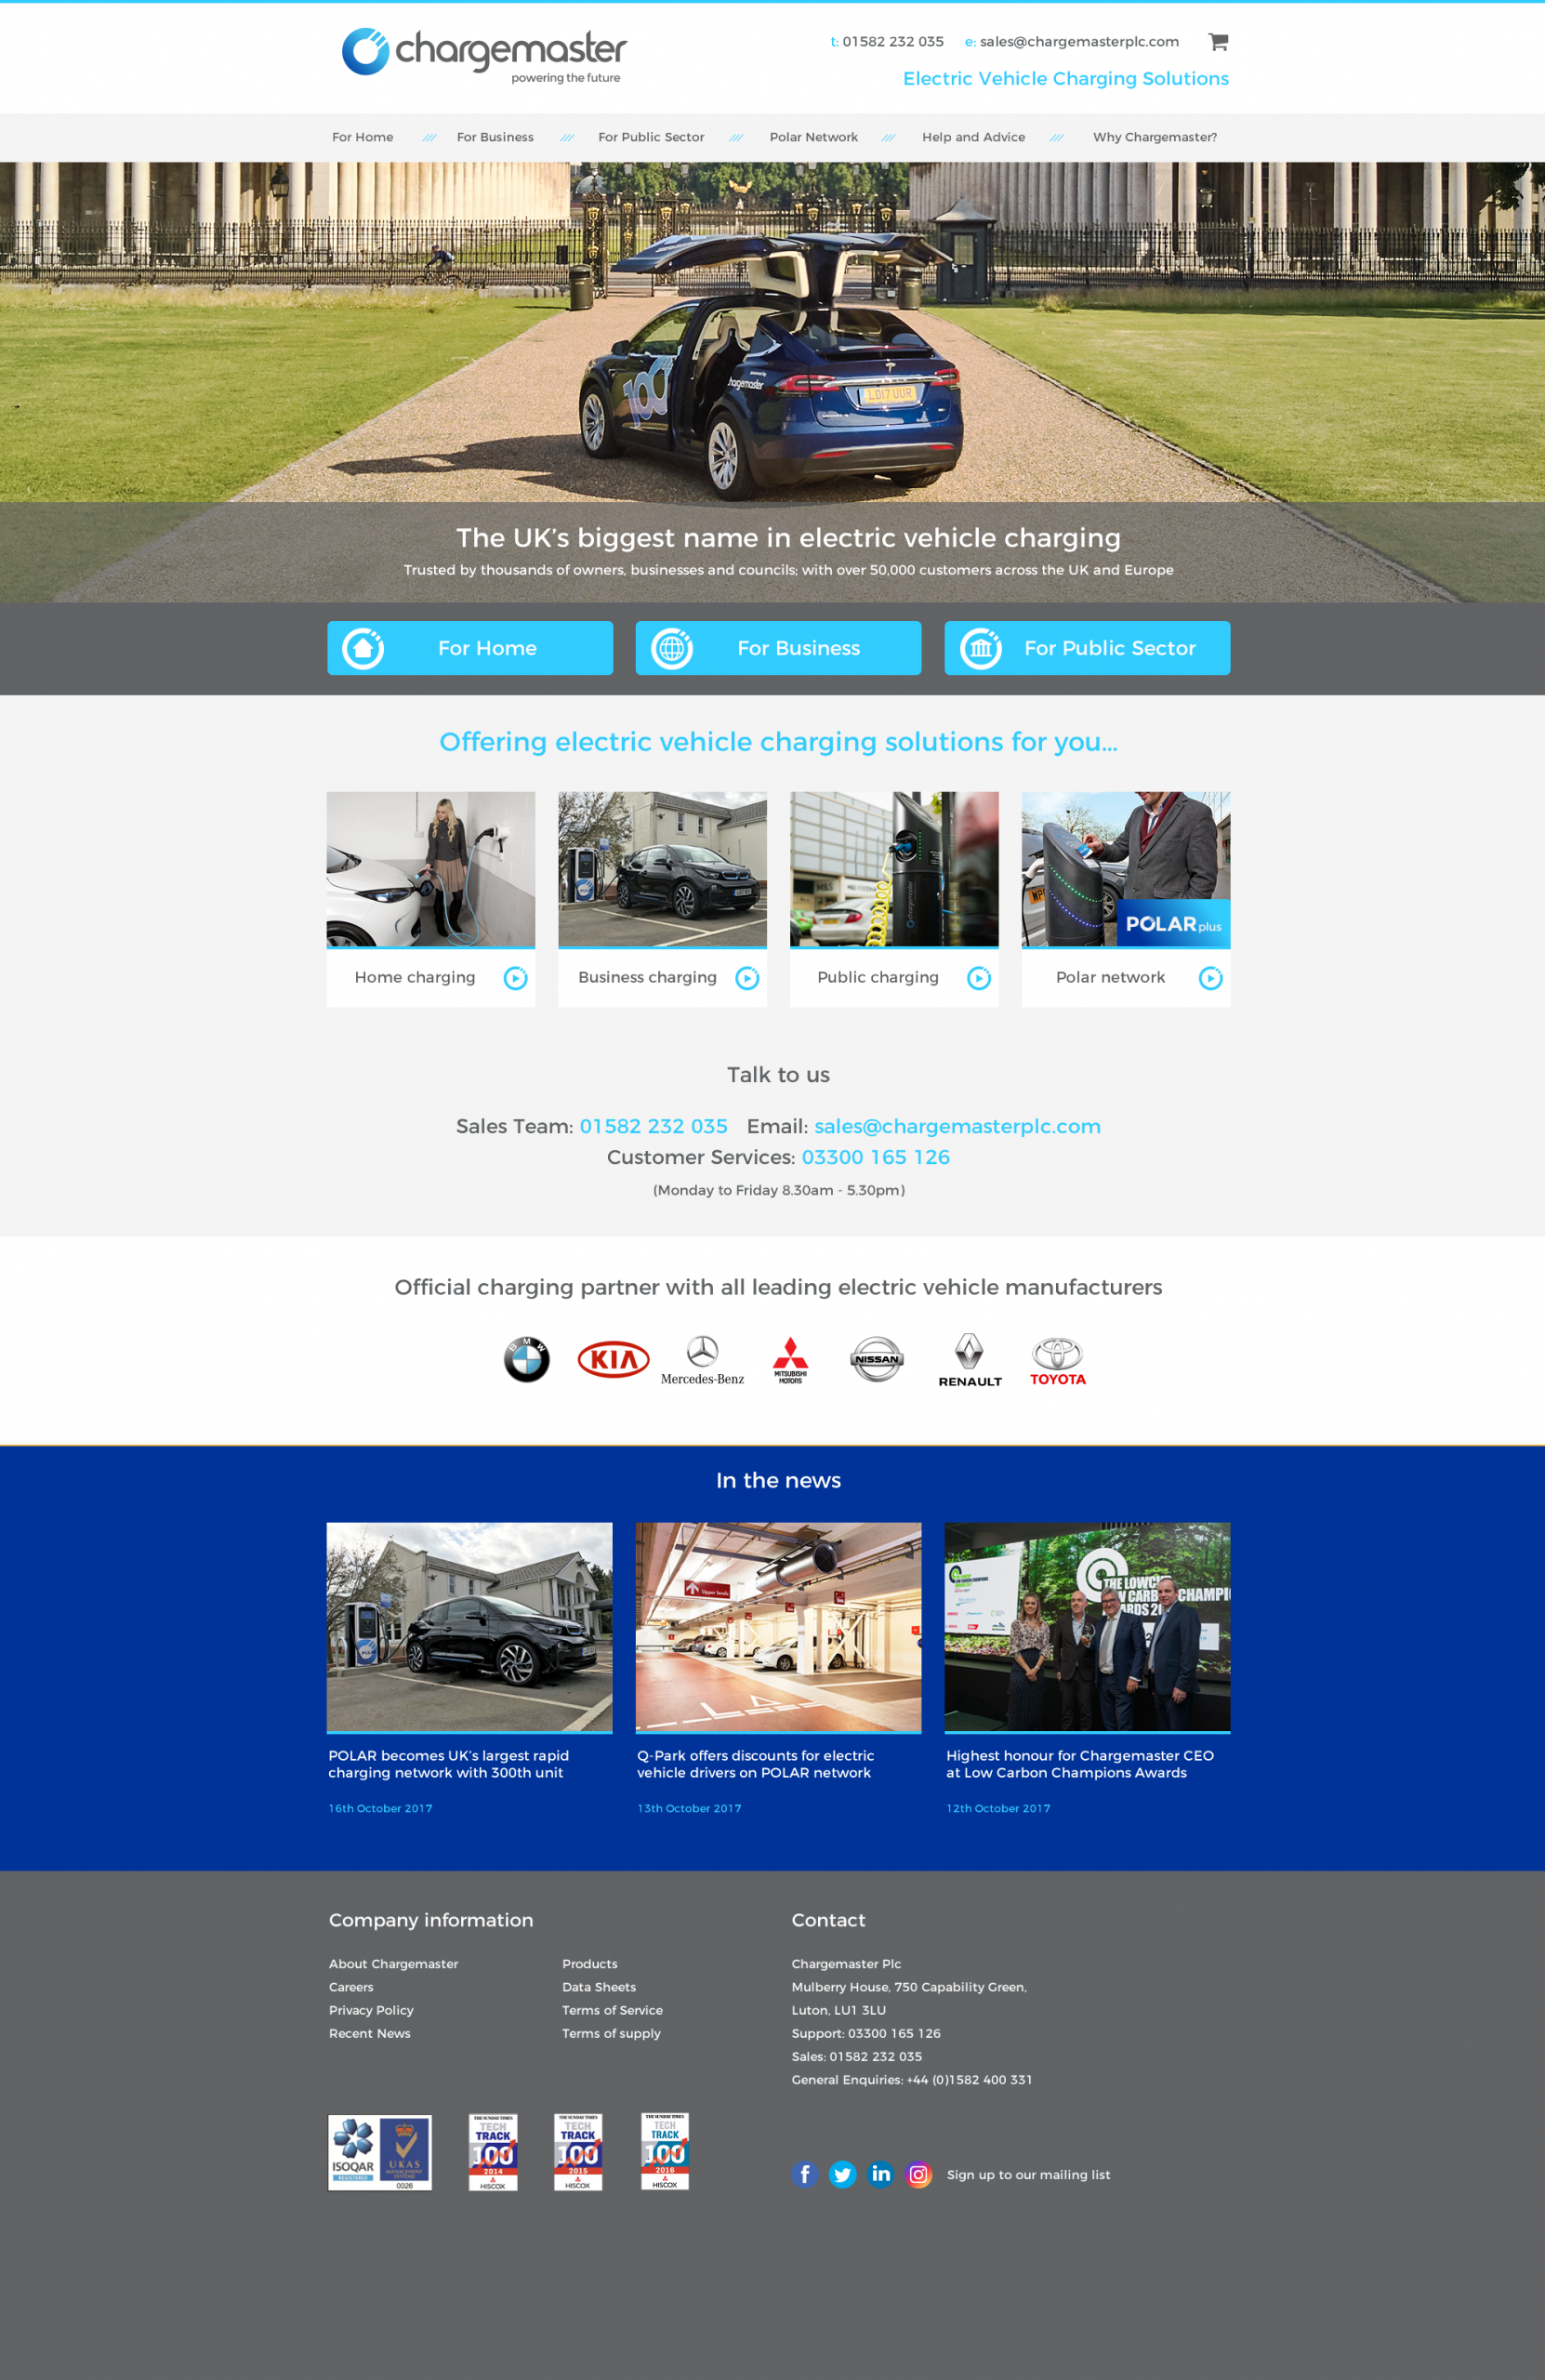 Chargemaster PLC Website Design - Home Page